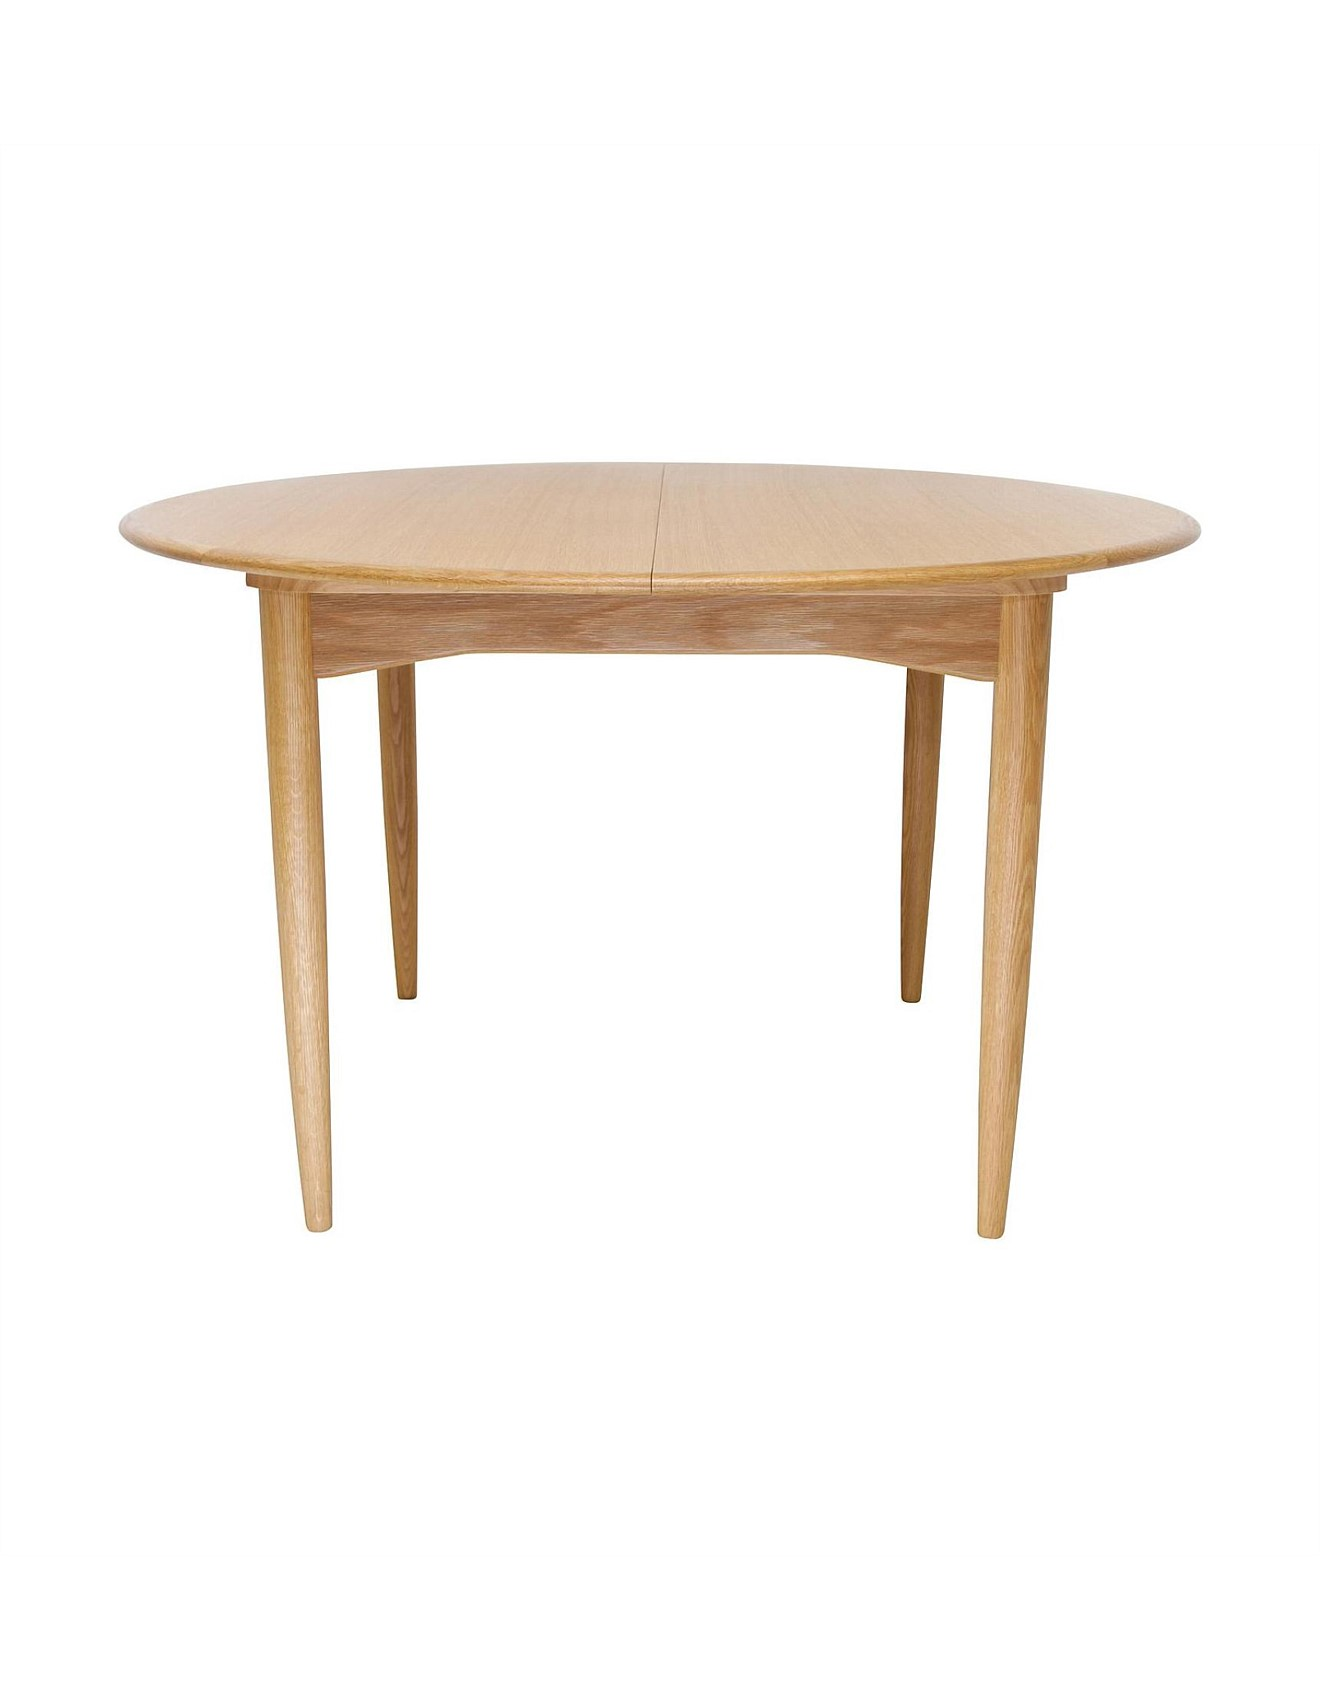 39 albany 39 round extension dining table. Black Bedroom Furniture Sets. Home Design Ideas